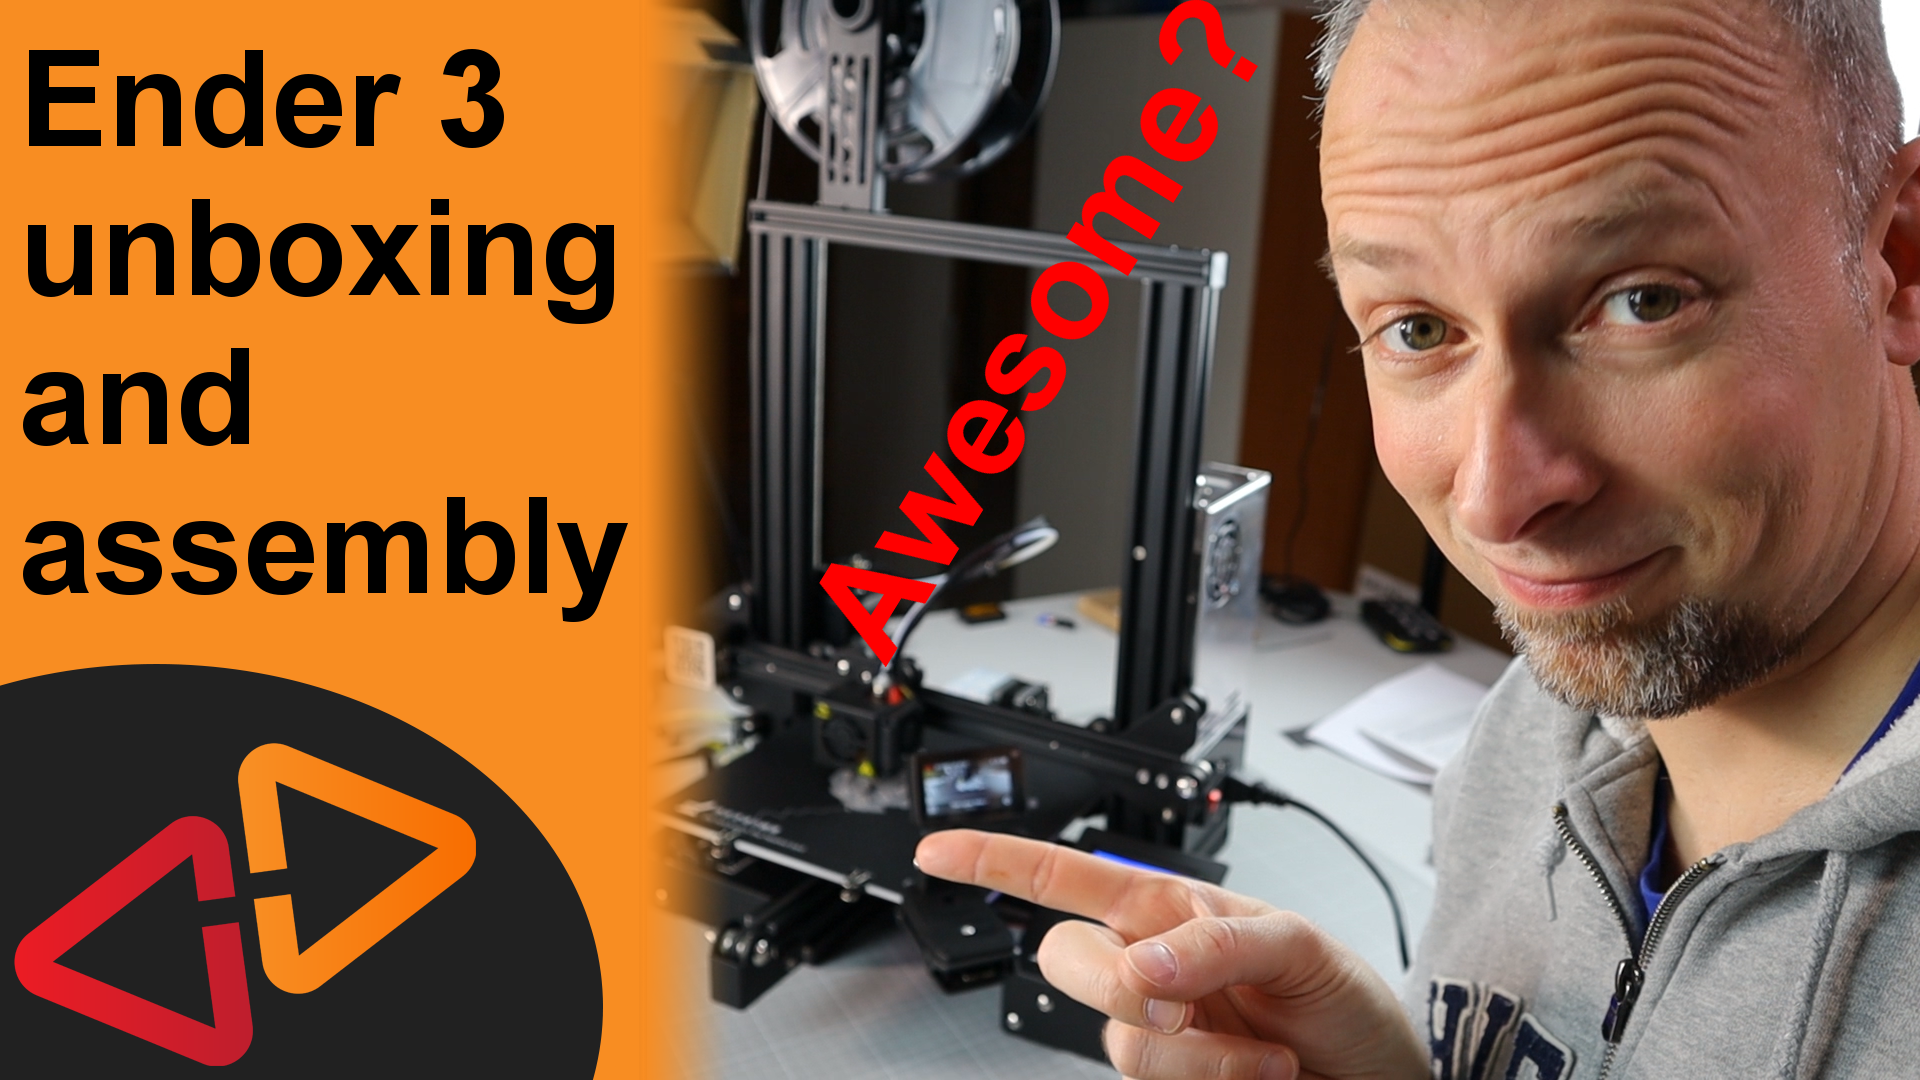 Ender 3 Unboxing and assembly